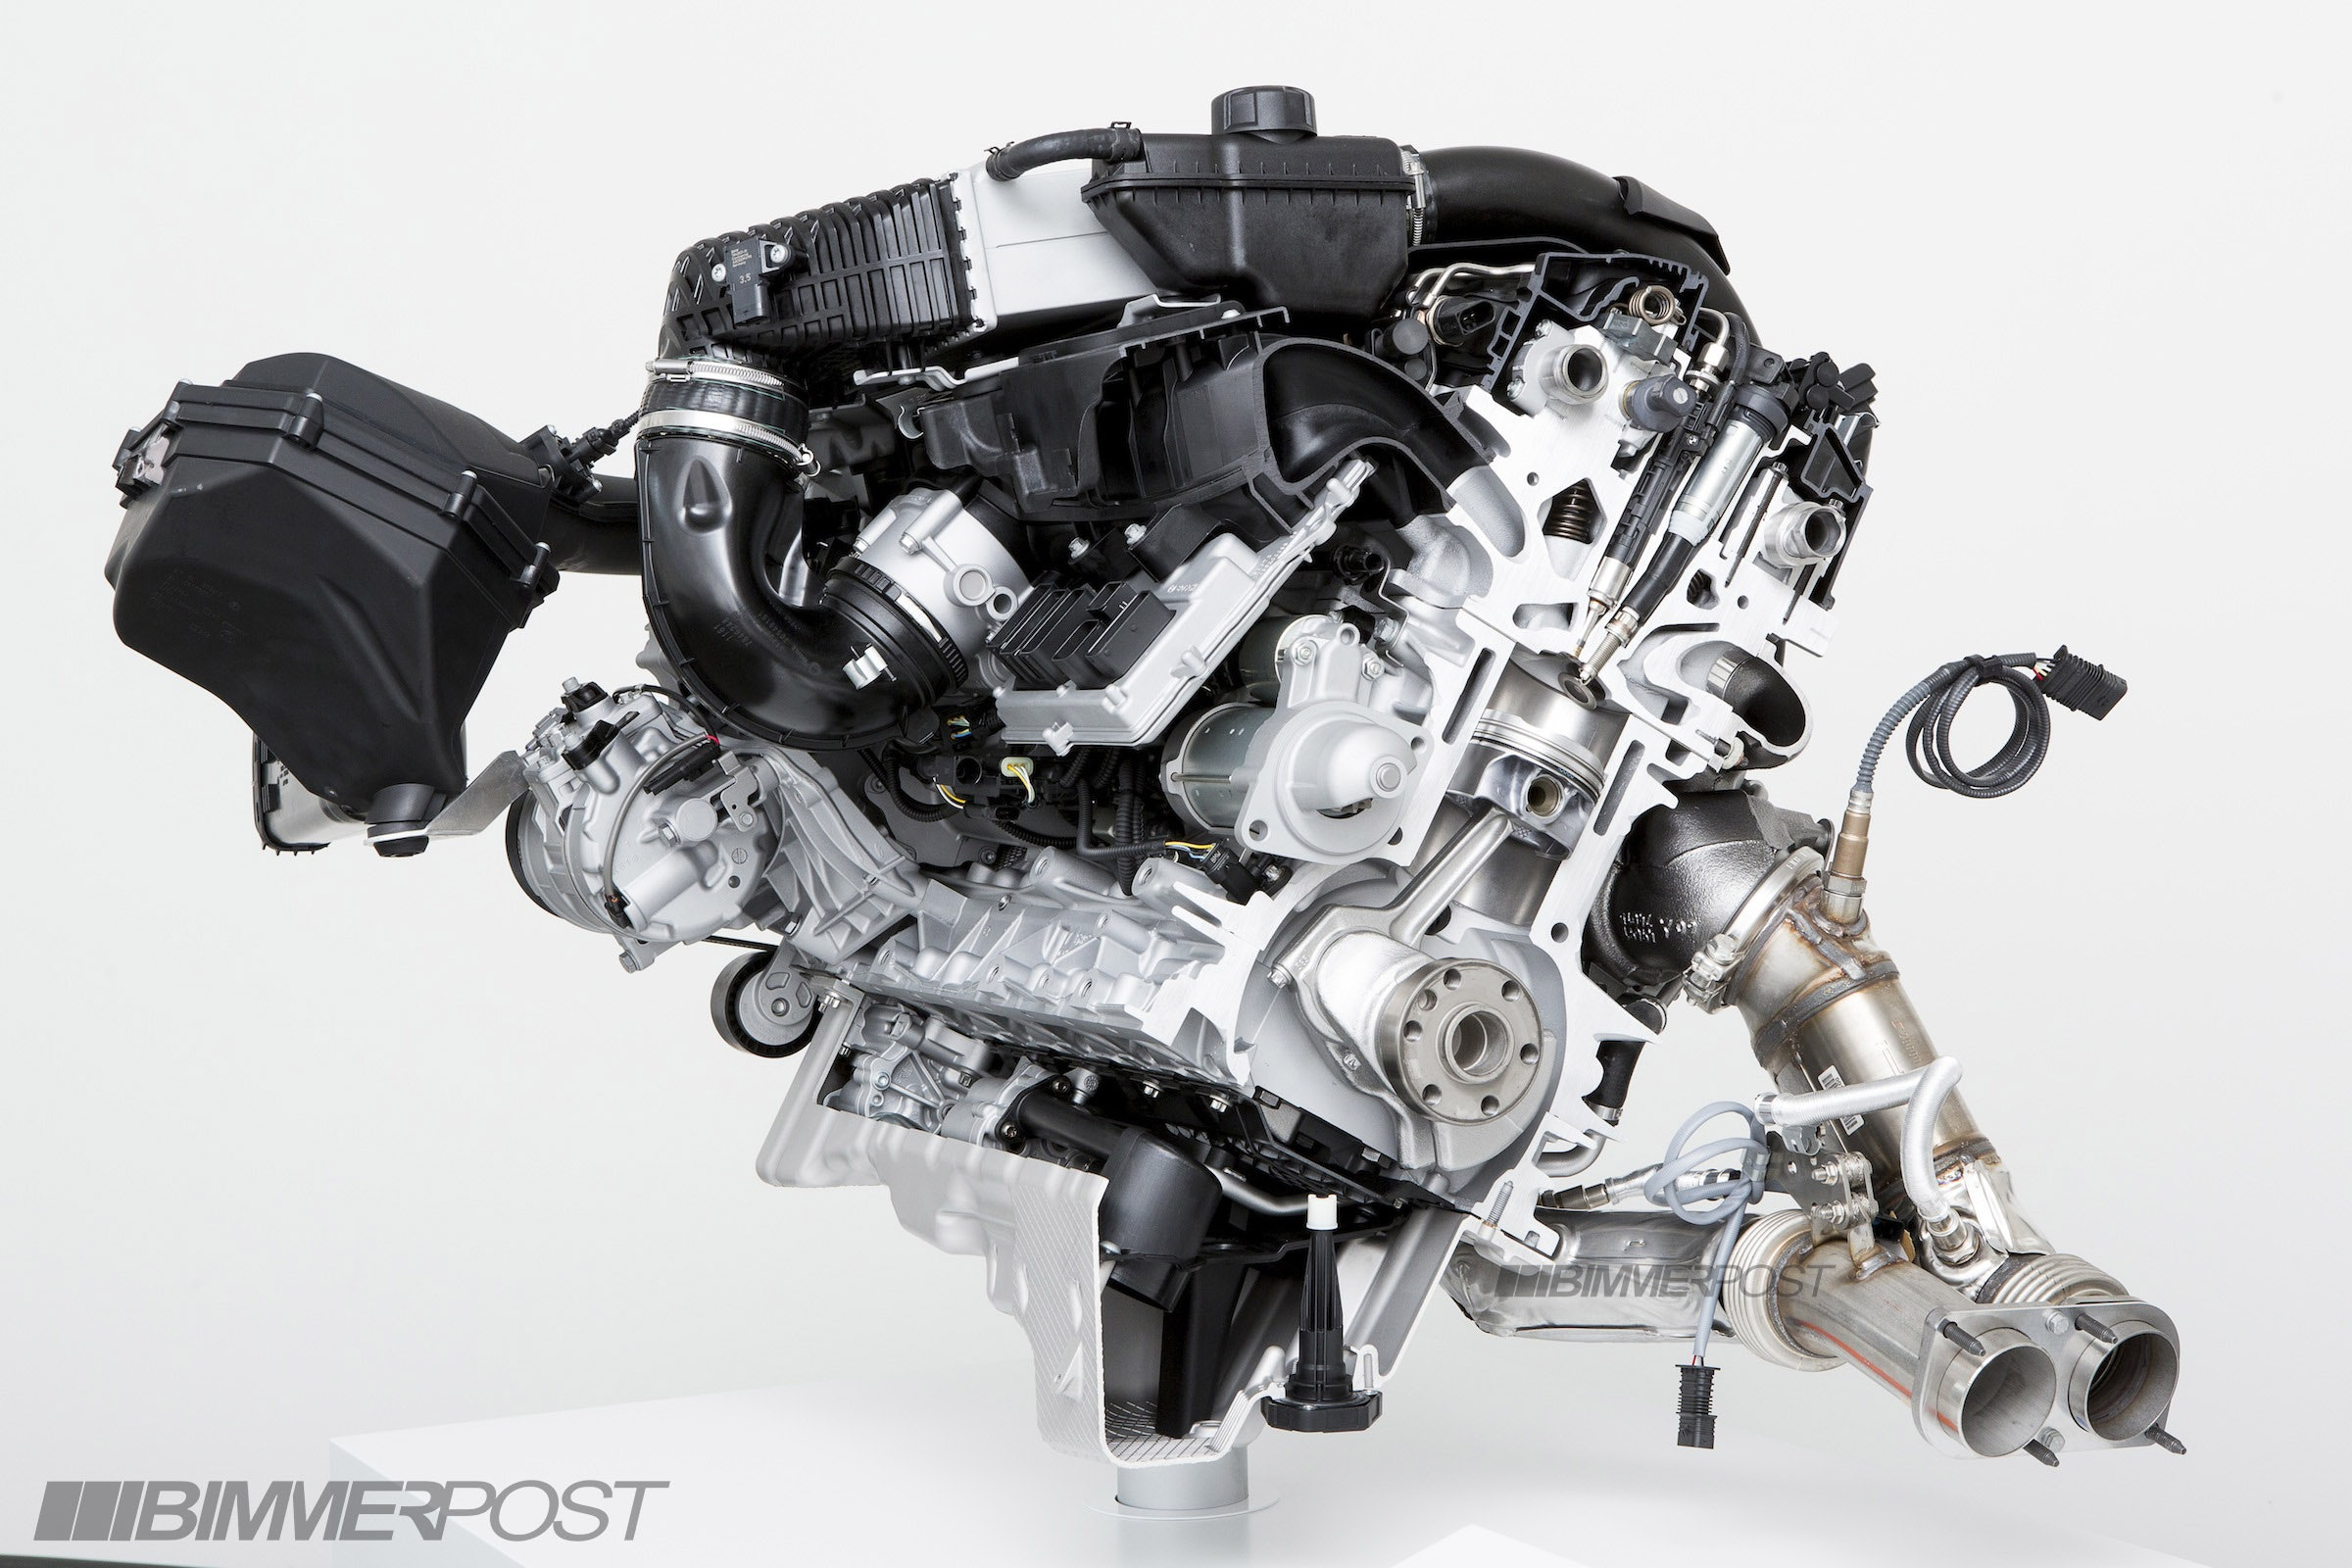 2015 Bmw M3 Engine Diagram Change Your Idea With Wiring 2001 325i Component Library Rh 85 Budoshop4you De